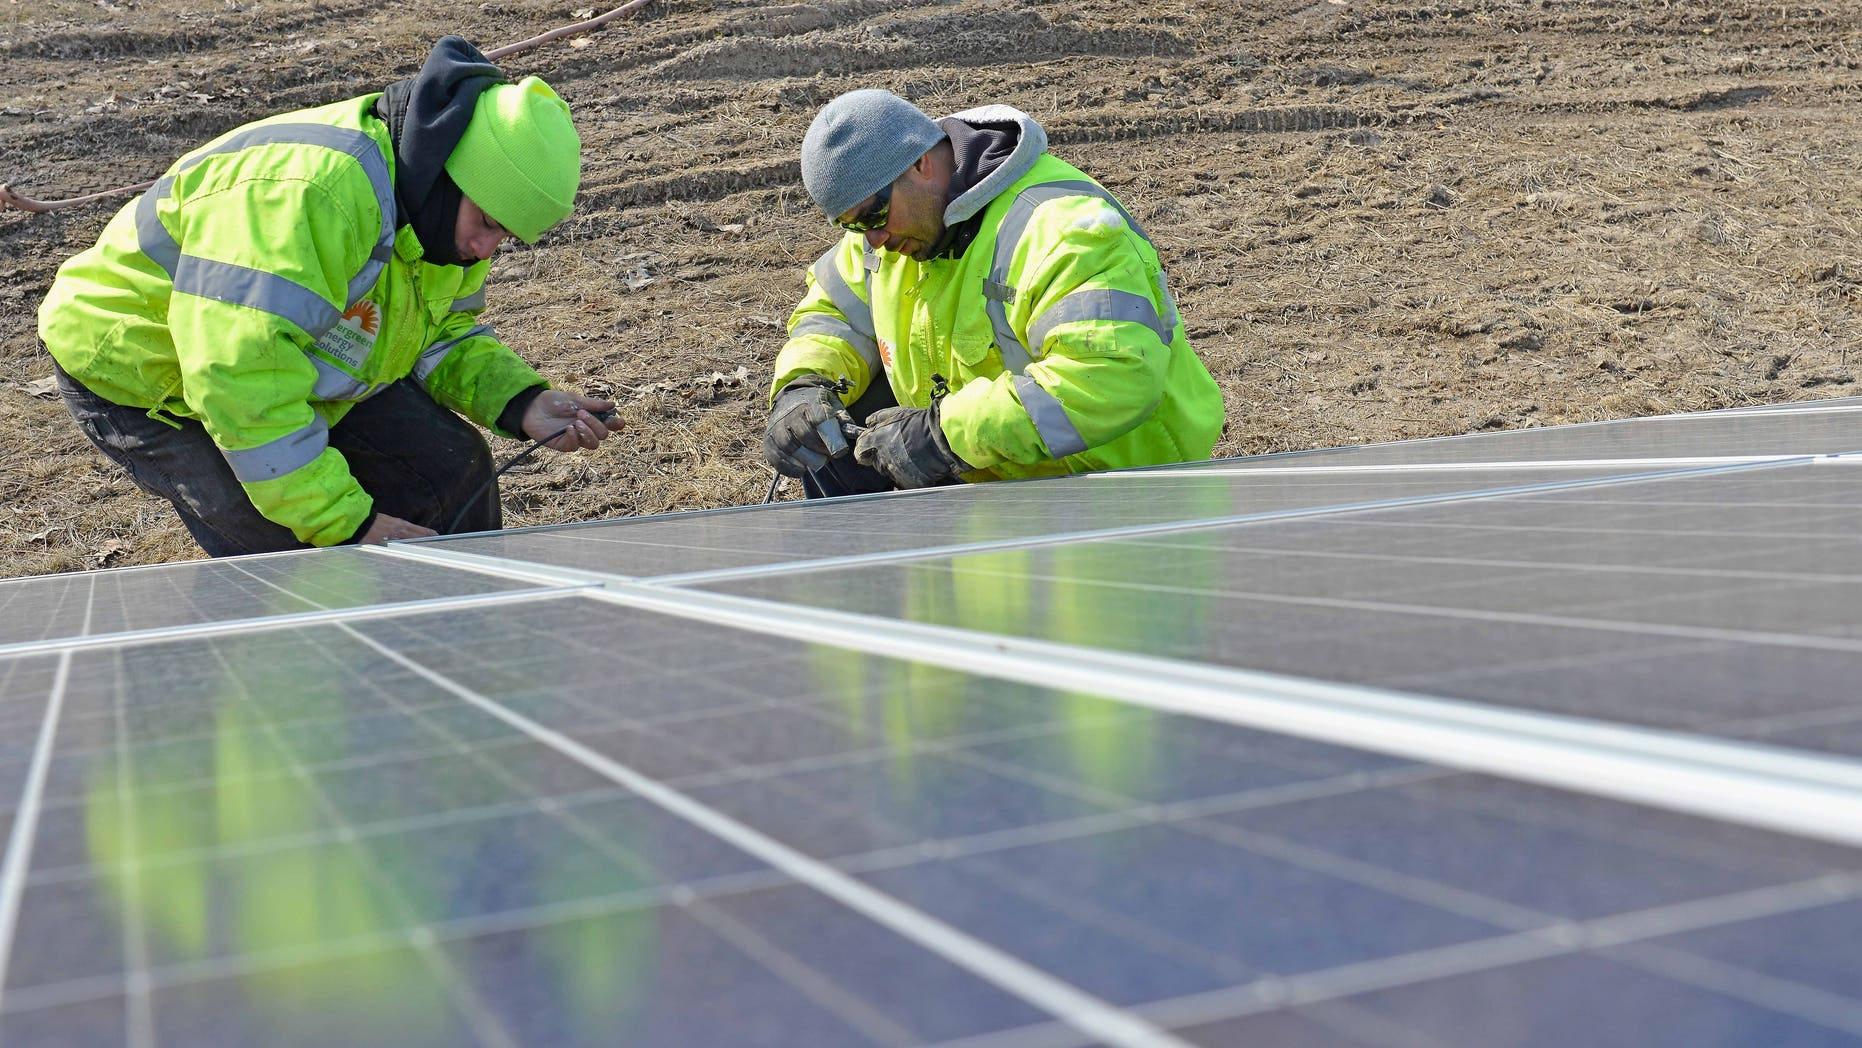 CLEVELAND, OH - MARCH 25:  (L-R) Orlando Santaella Jr. and Orlando Santaella Sr. of Evergreen Energy Solutions work on a ground-mounted solar array located on Euclid Ave across the street from Lakeview Cemetery  on March 25, 2014 in Cleveland, Ohio.  (Photo by Duane Prokop/Getty Images for TakePart.org)